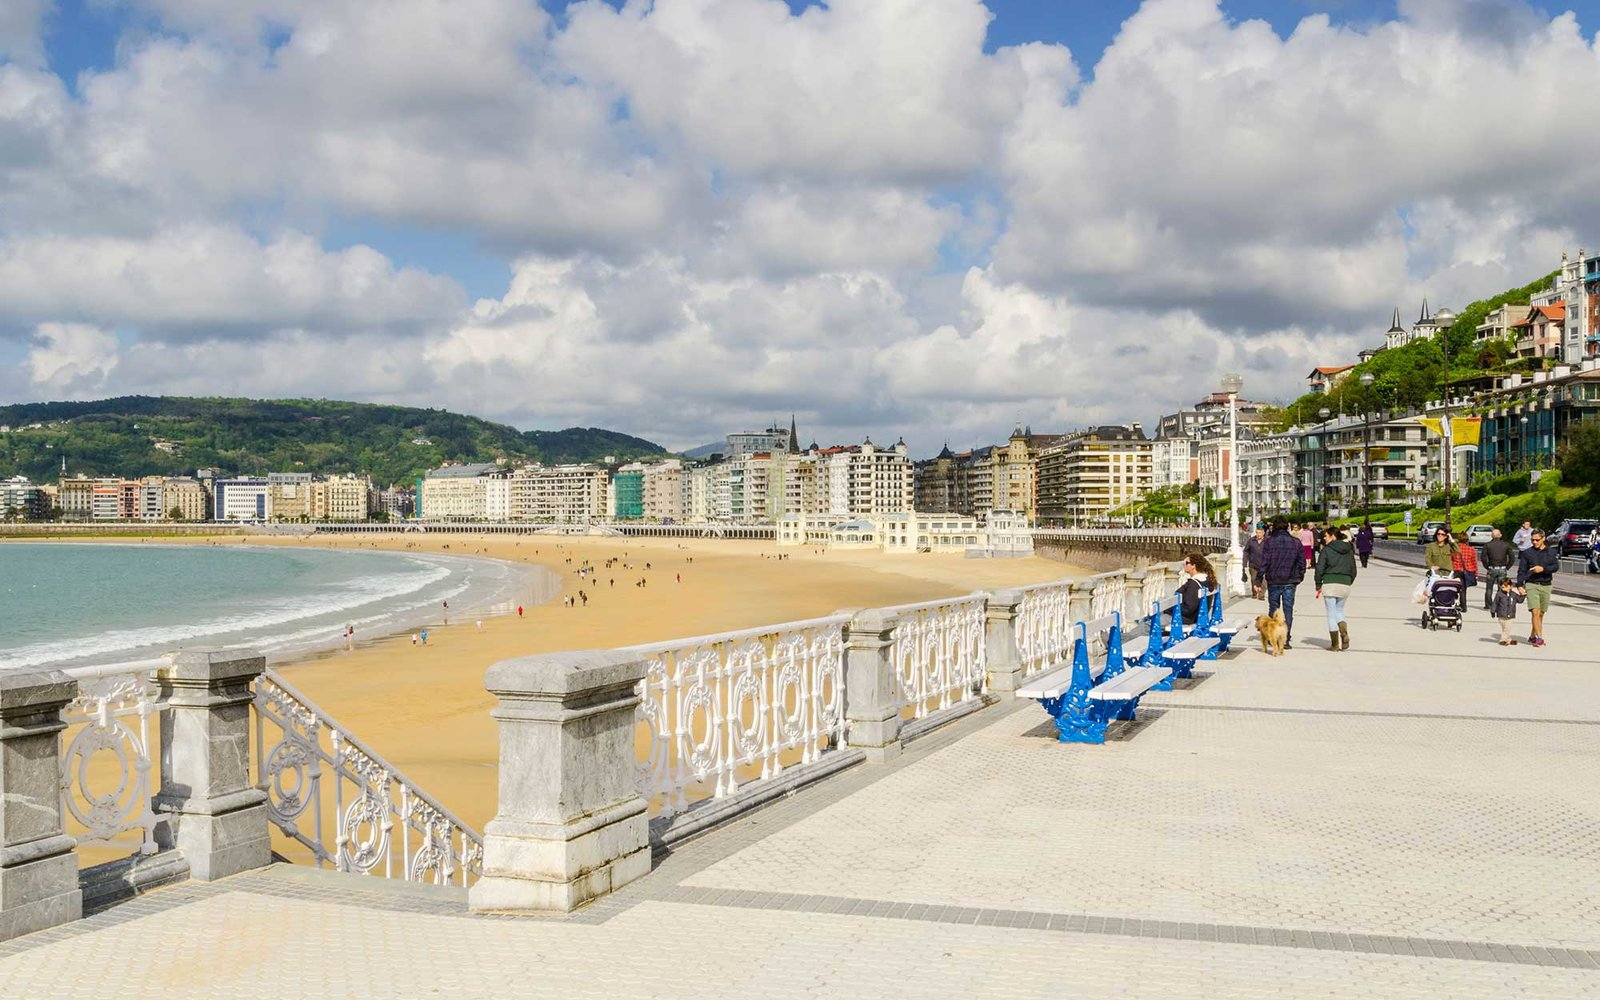 DFHJCH People walking along the Promenade La Concha, San Sebastian, Spain. Image shot 2013. Exact date unknown.